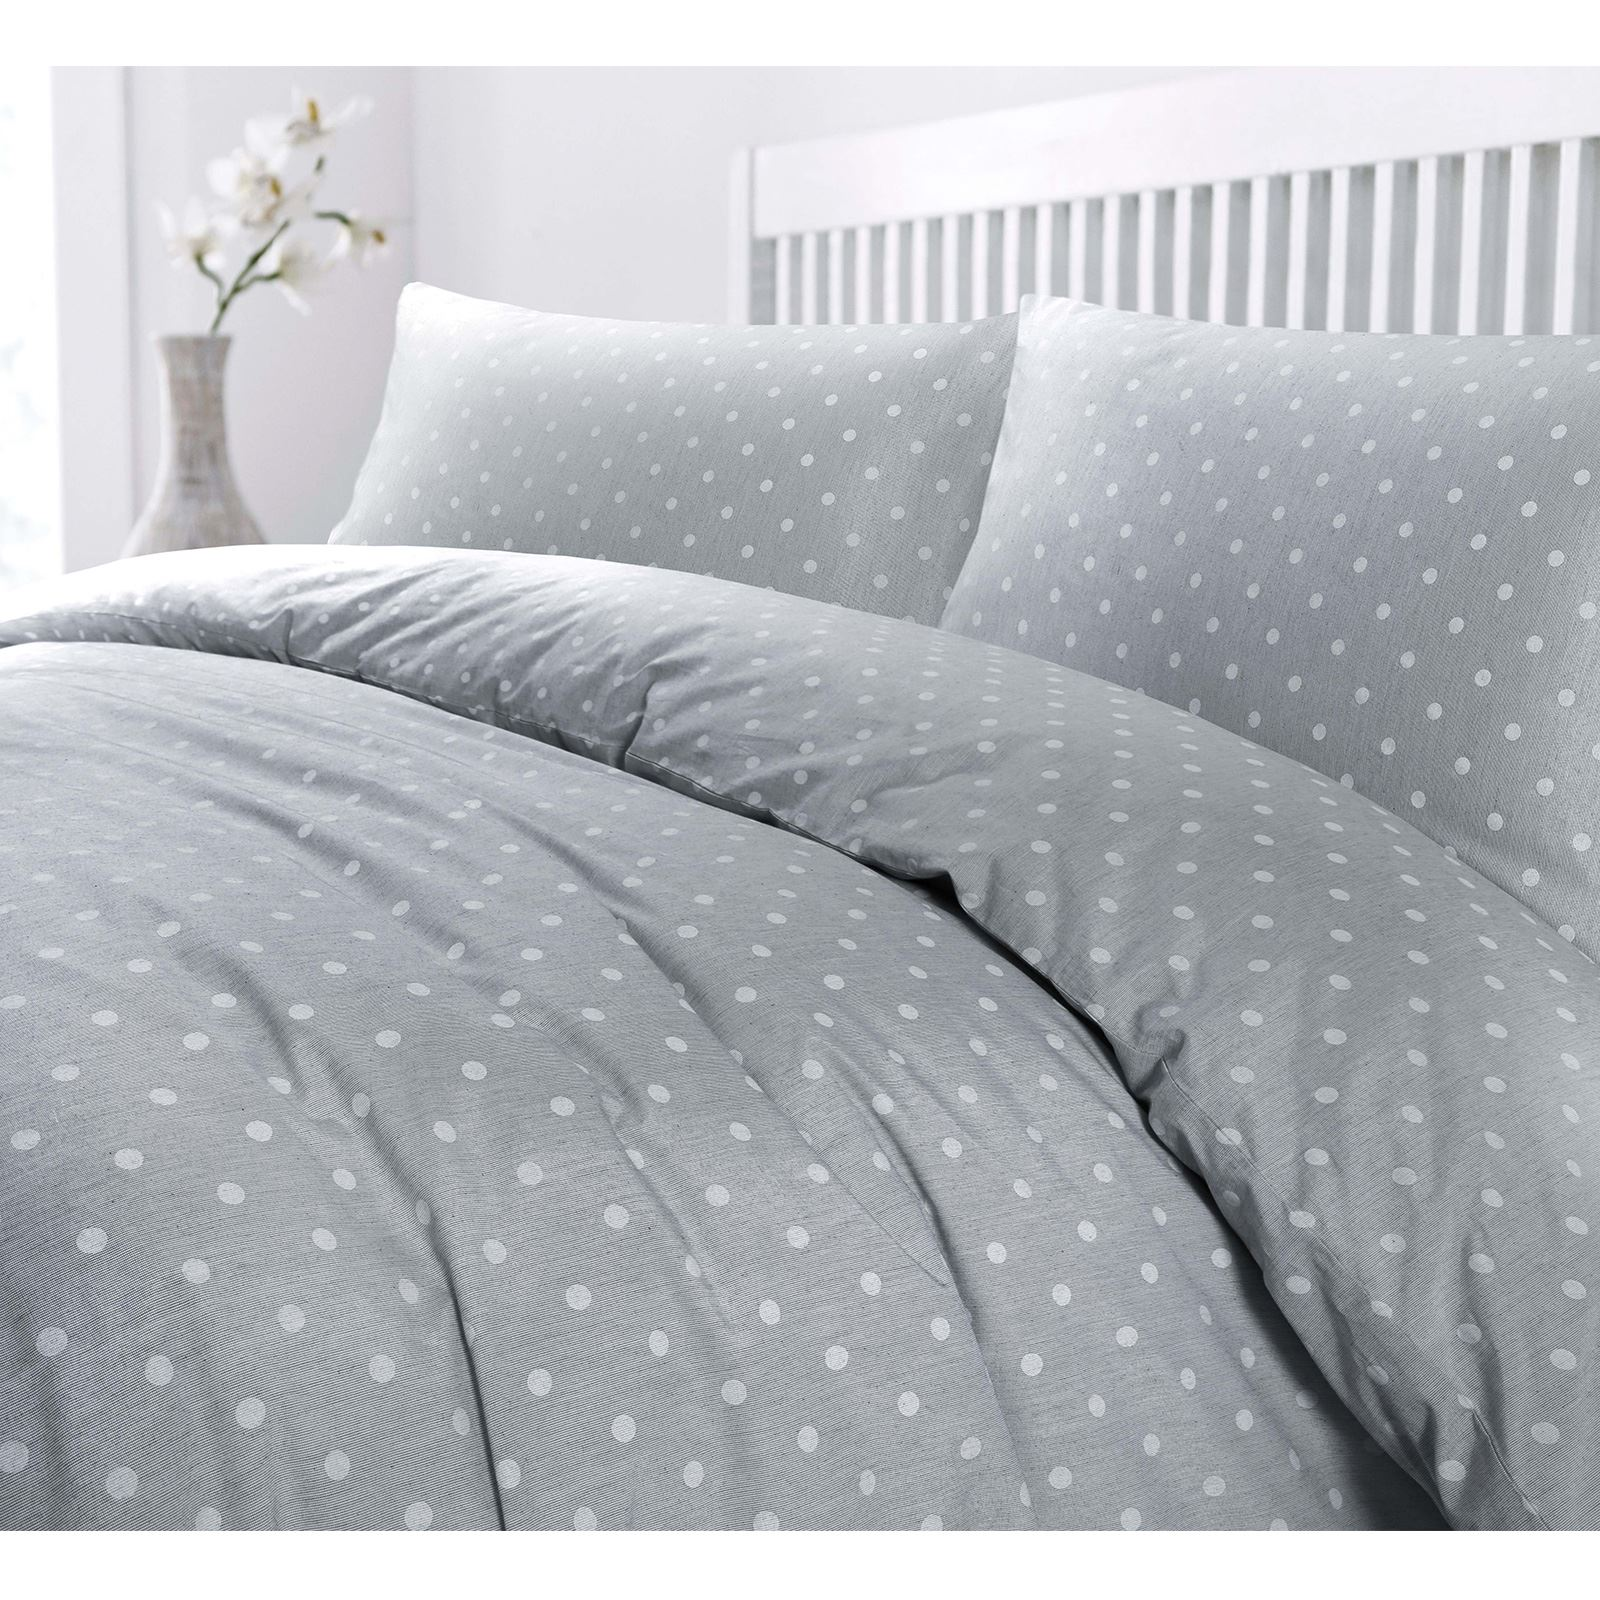 fil a fil end on end woven polka dots duvet quilt cover pillow case bedding set ebay. Black Bedroom Furniture Sets. Home Design Ideas